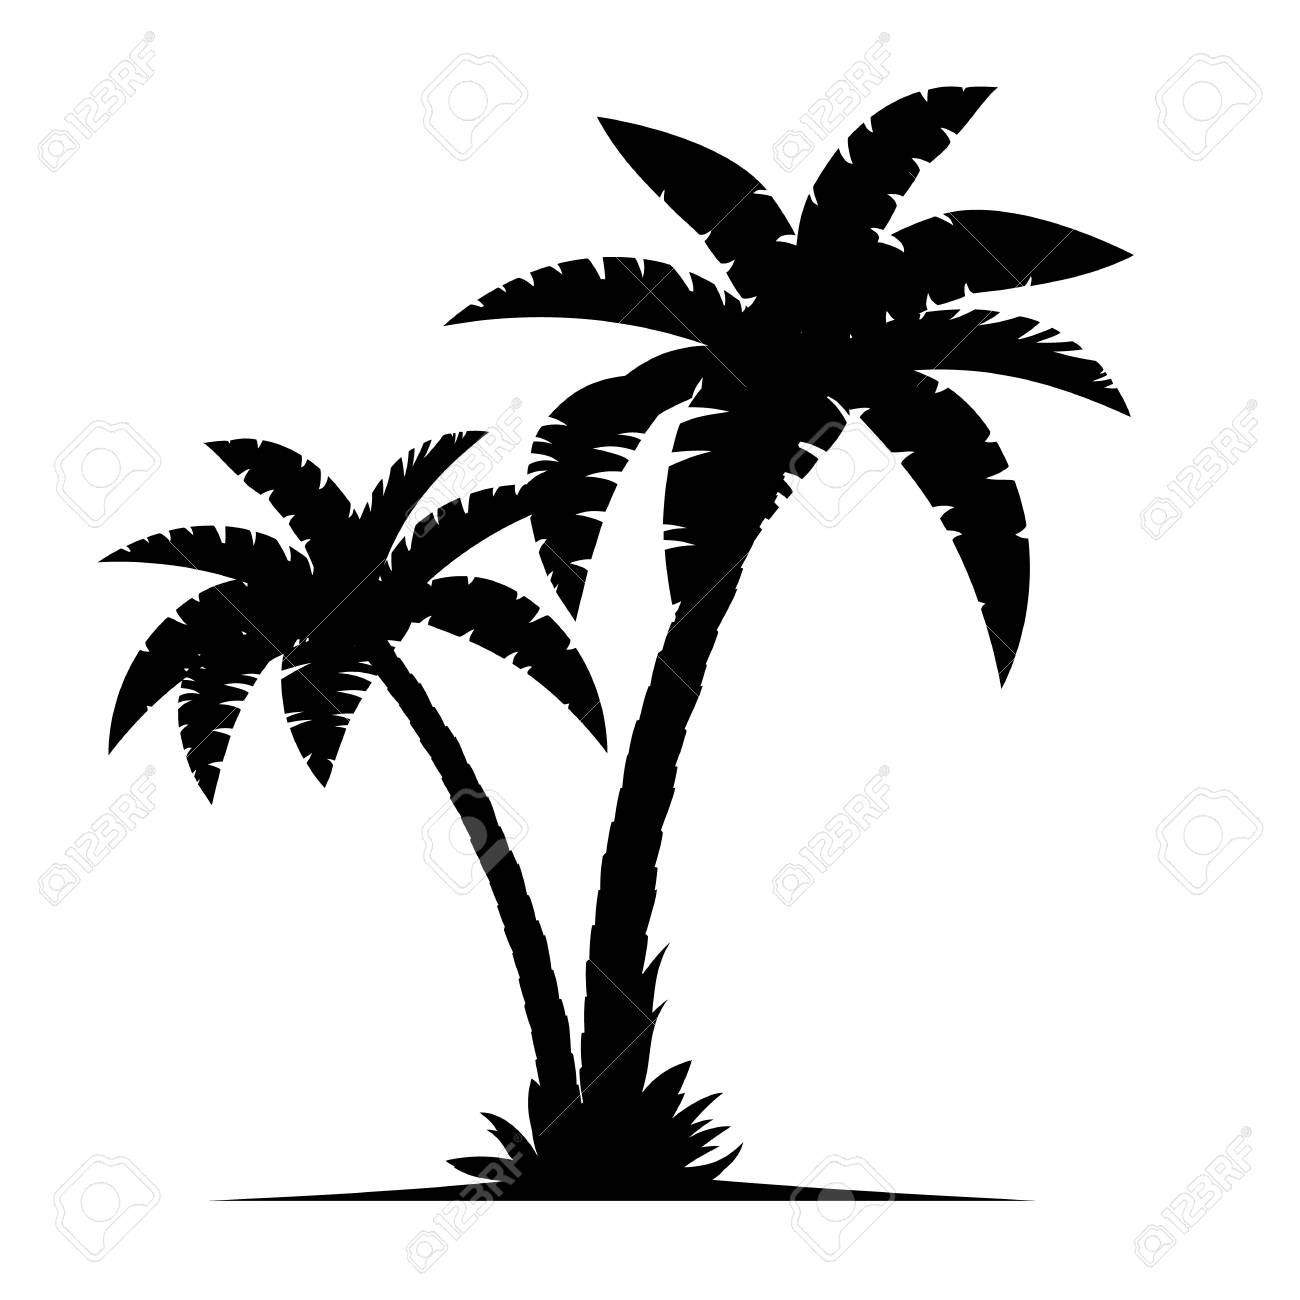 tropical palm trees silhouettes isolated on white background rh 123rf com palm trees vector art free vector palm trees black and white